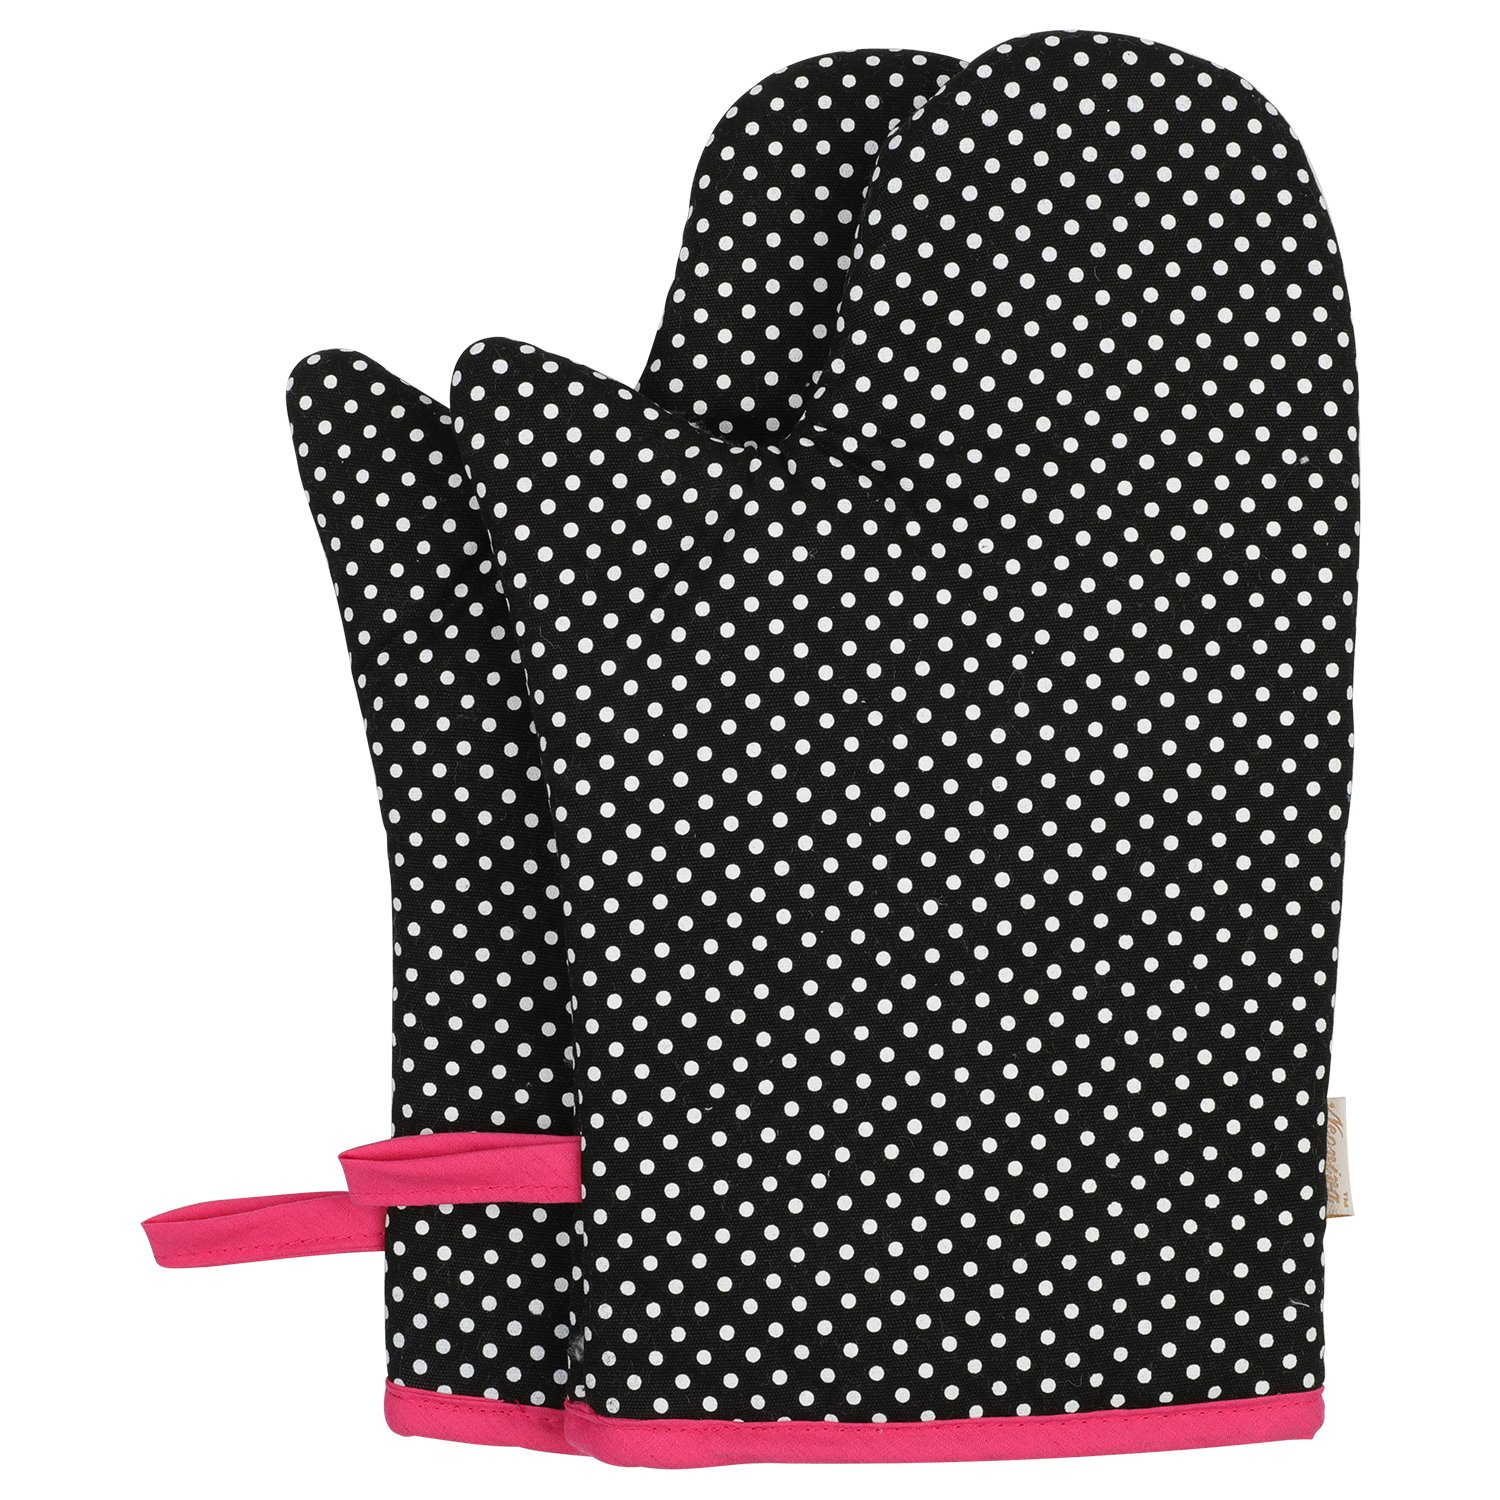 Neoviva Cotton Canvas Oven Mitt for Adult, Pack of 2, Polka Dots Black XinDaSheng(HangZhou) Arts Co. LTD. OvenMitt-2